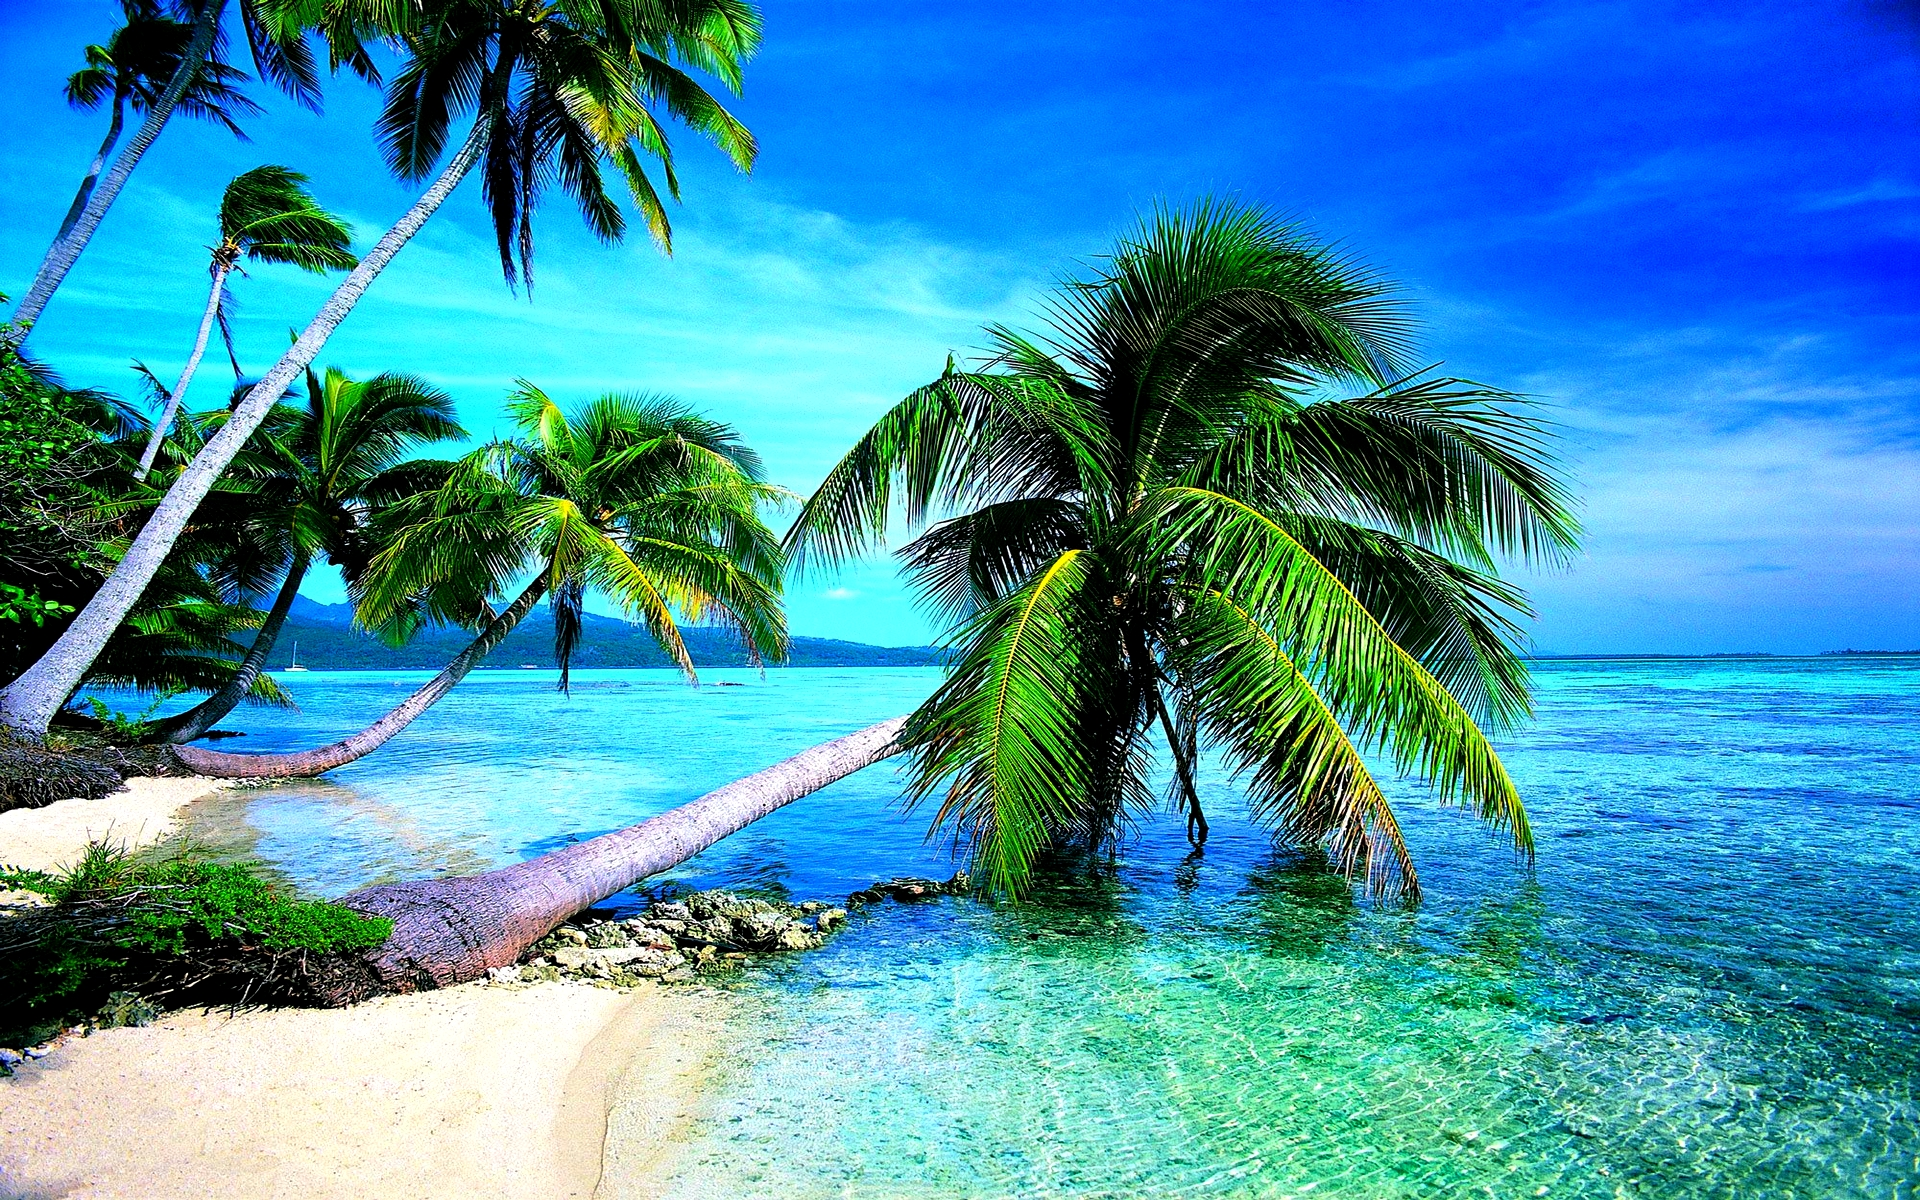 Beach HD Wallpaper 2015 for Desktop Tropical Beach HD Wallpaper 1920x1200